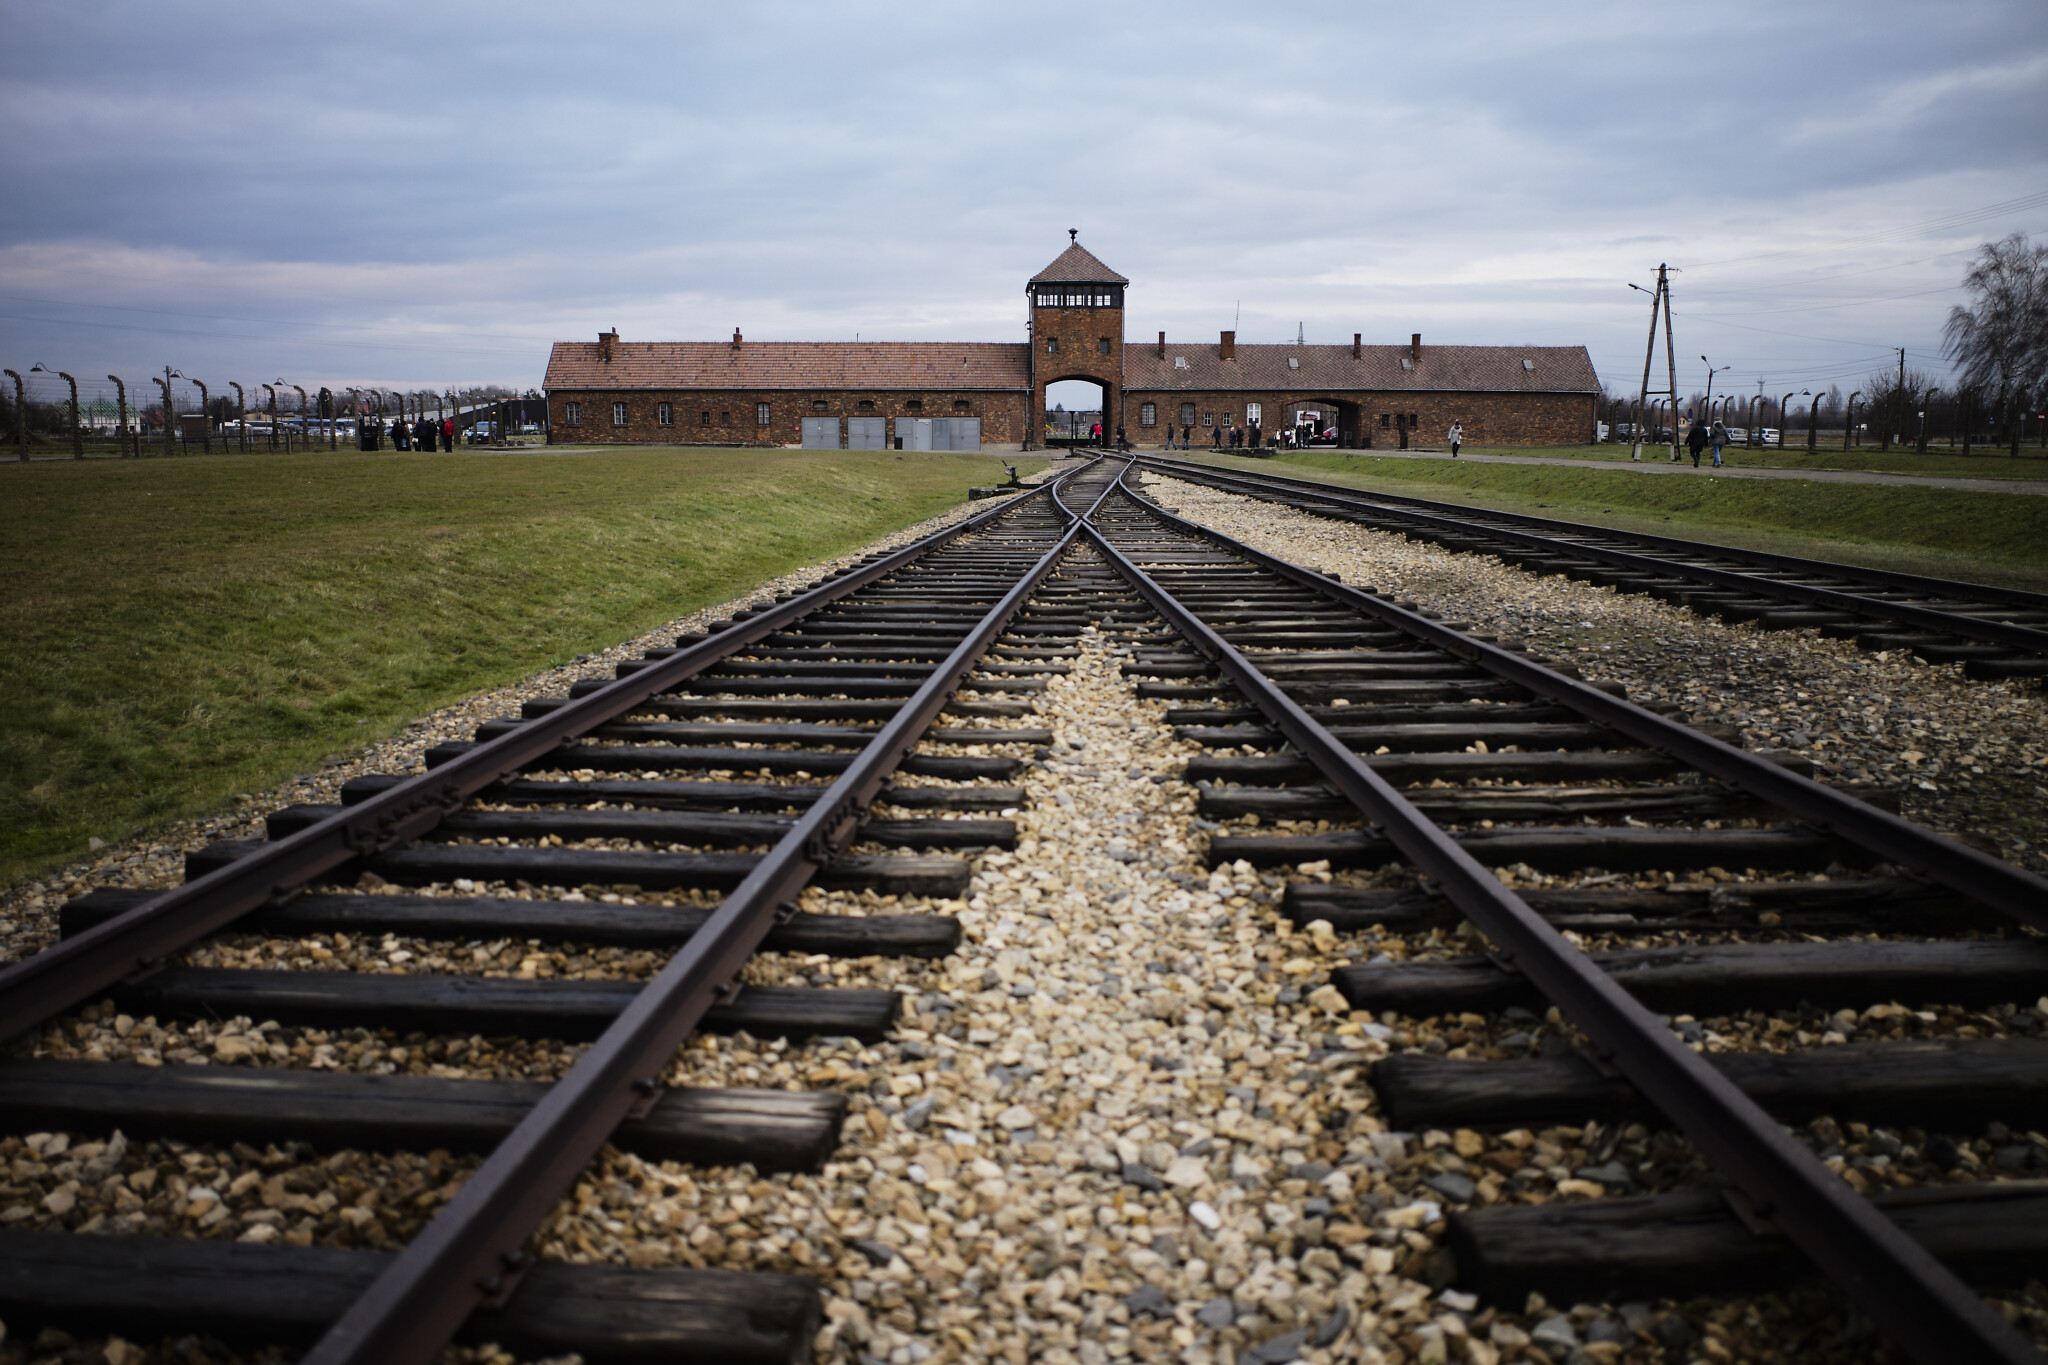 Timeline: The history of Auschwitz-Birkenau | The Times of Israel